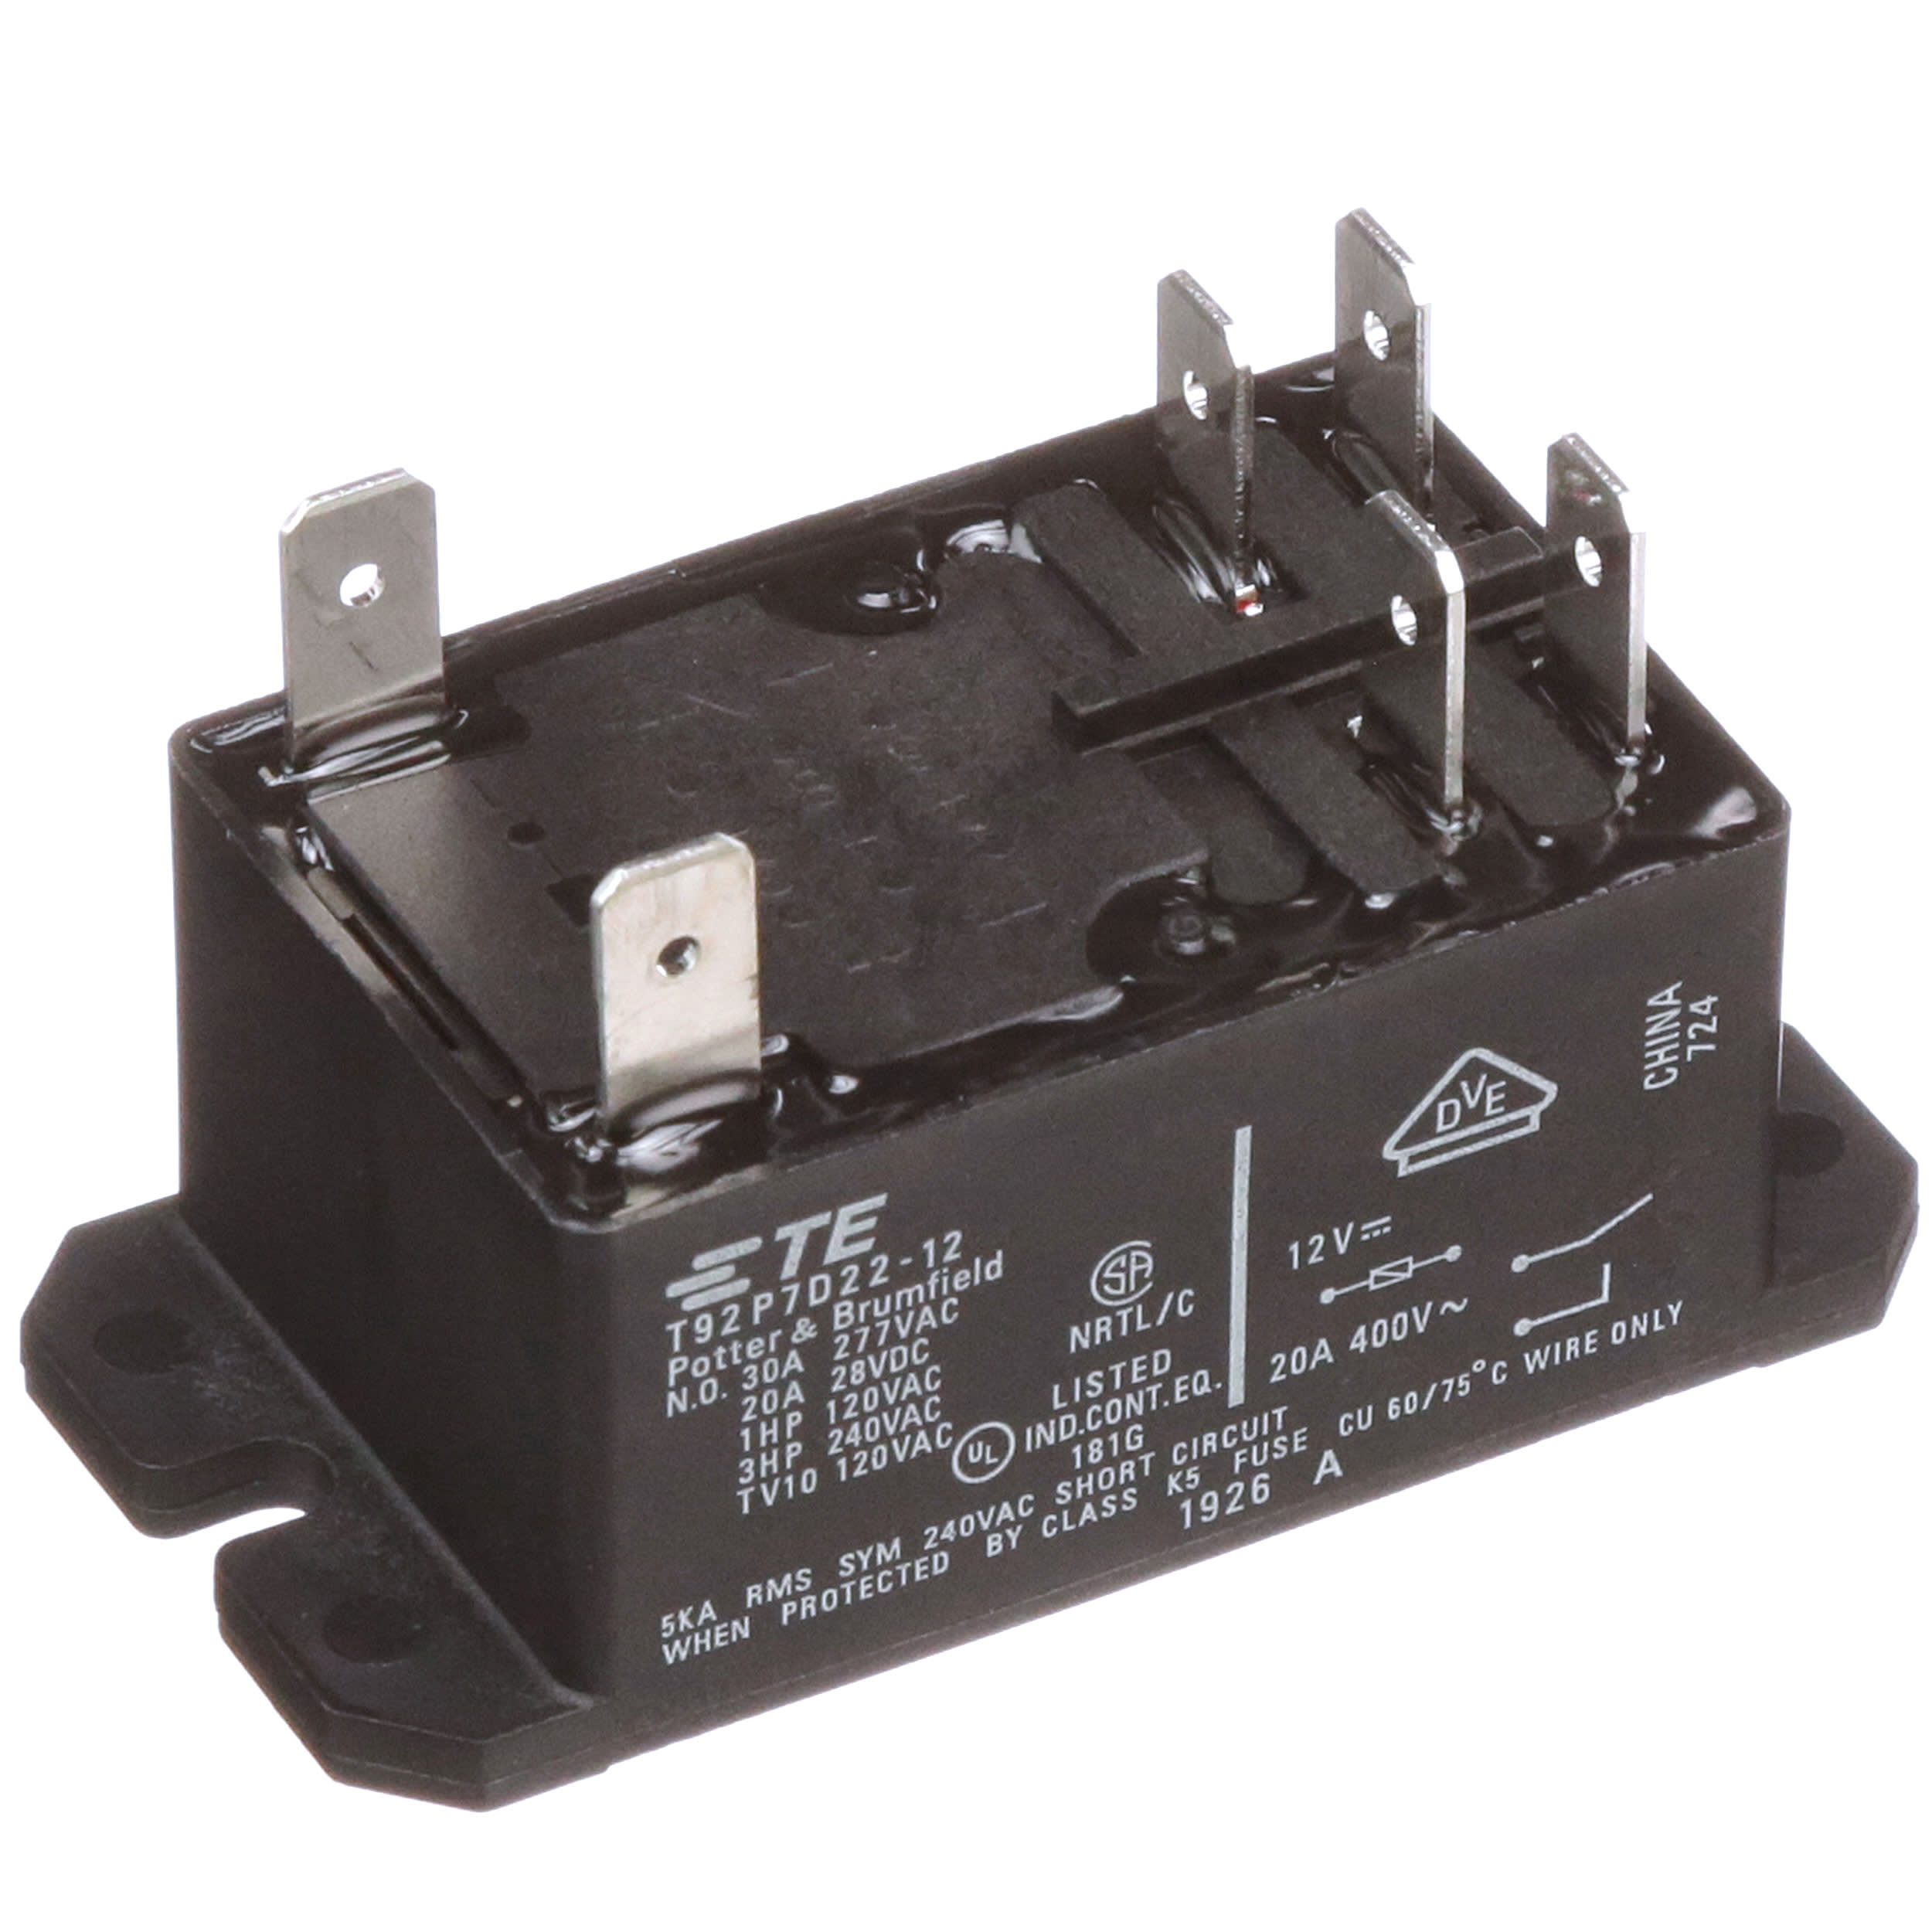 Te Connectivity T92p7d22 12 High Power Pcb Relay 30a 12vdc Dpdt Schematic Symbol Safety Relays Dpst Panel Moun T Quick Connect Term Allied Electronics Automation